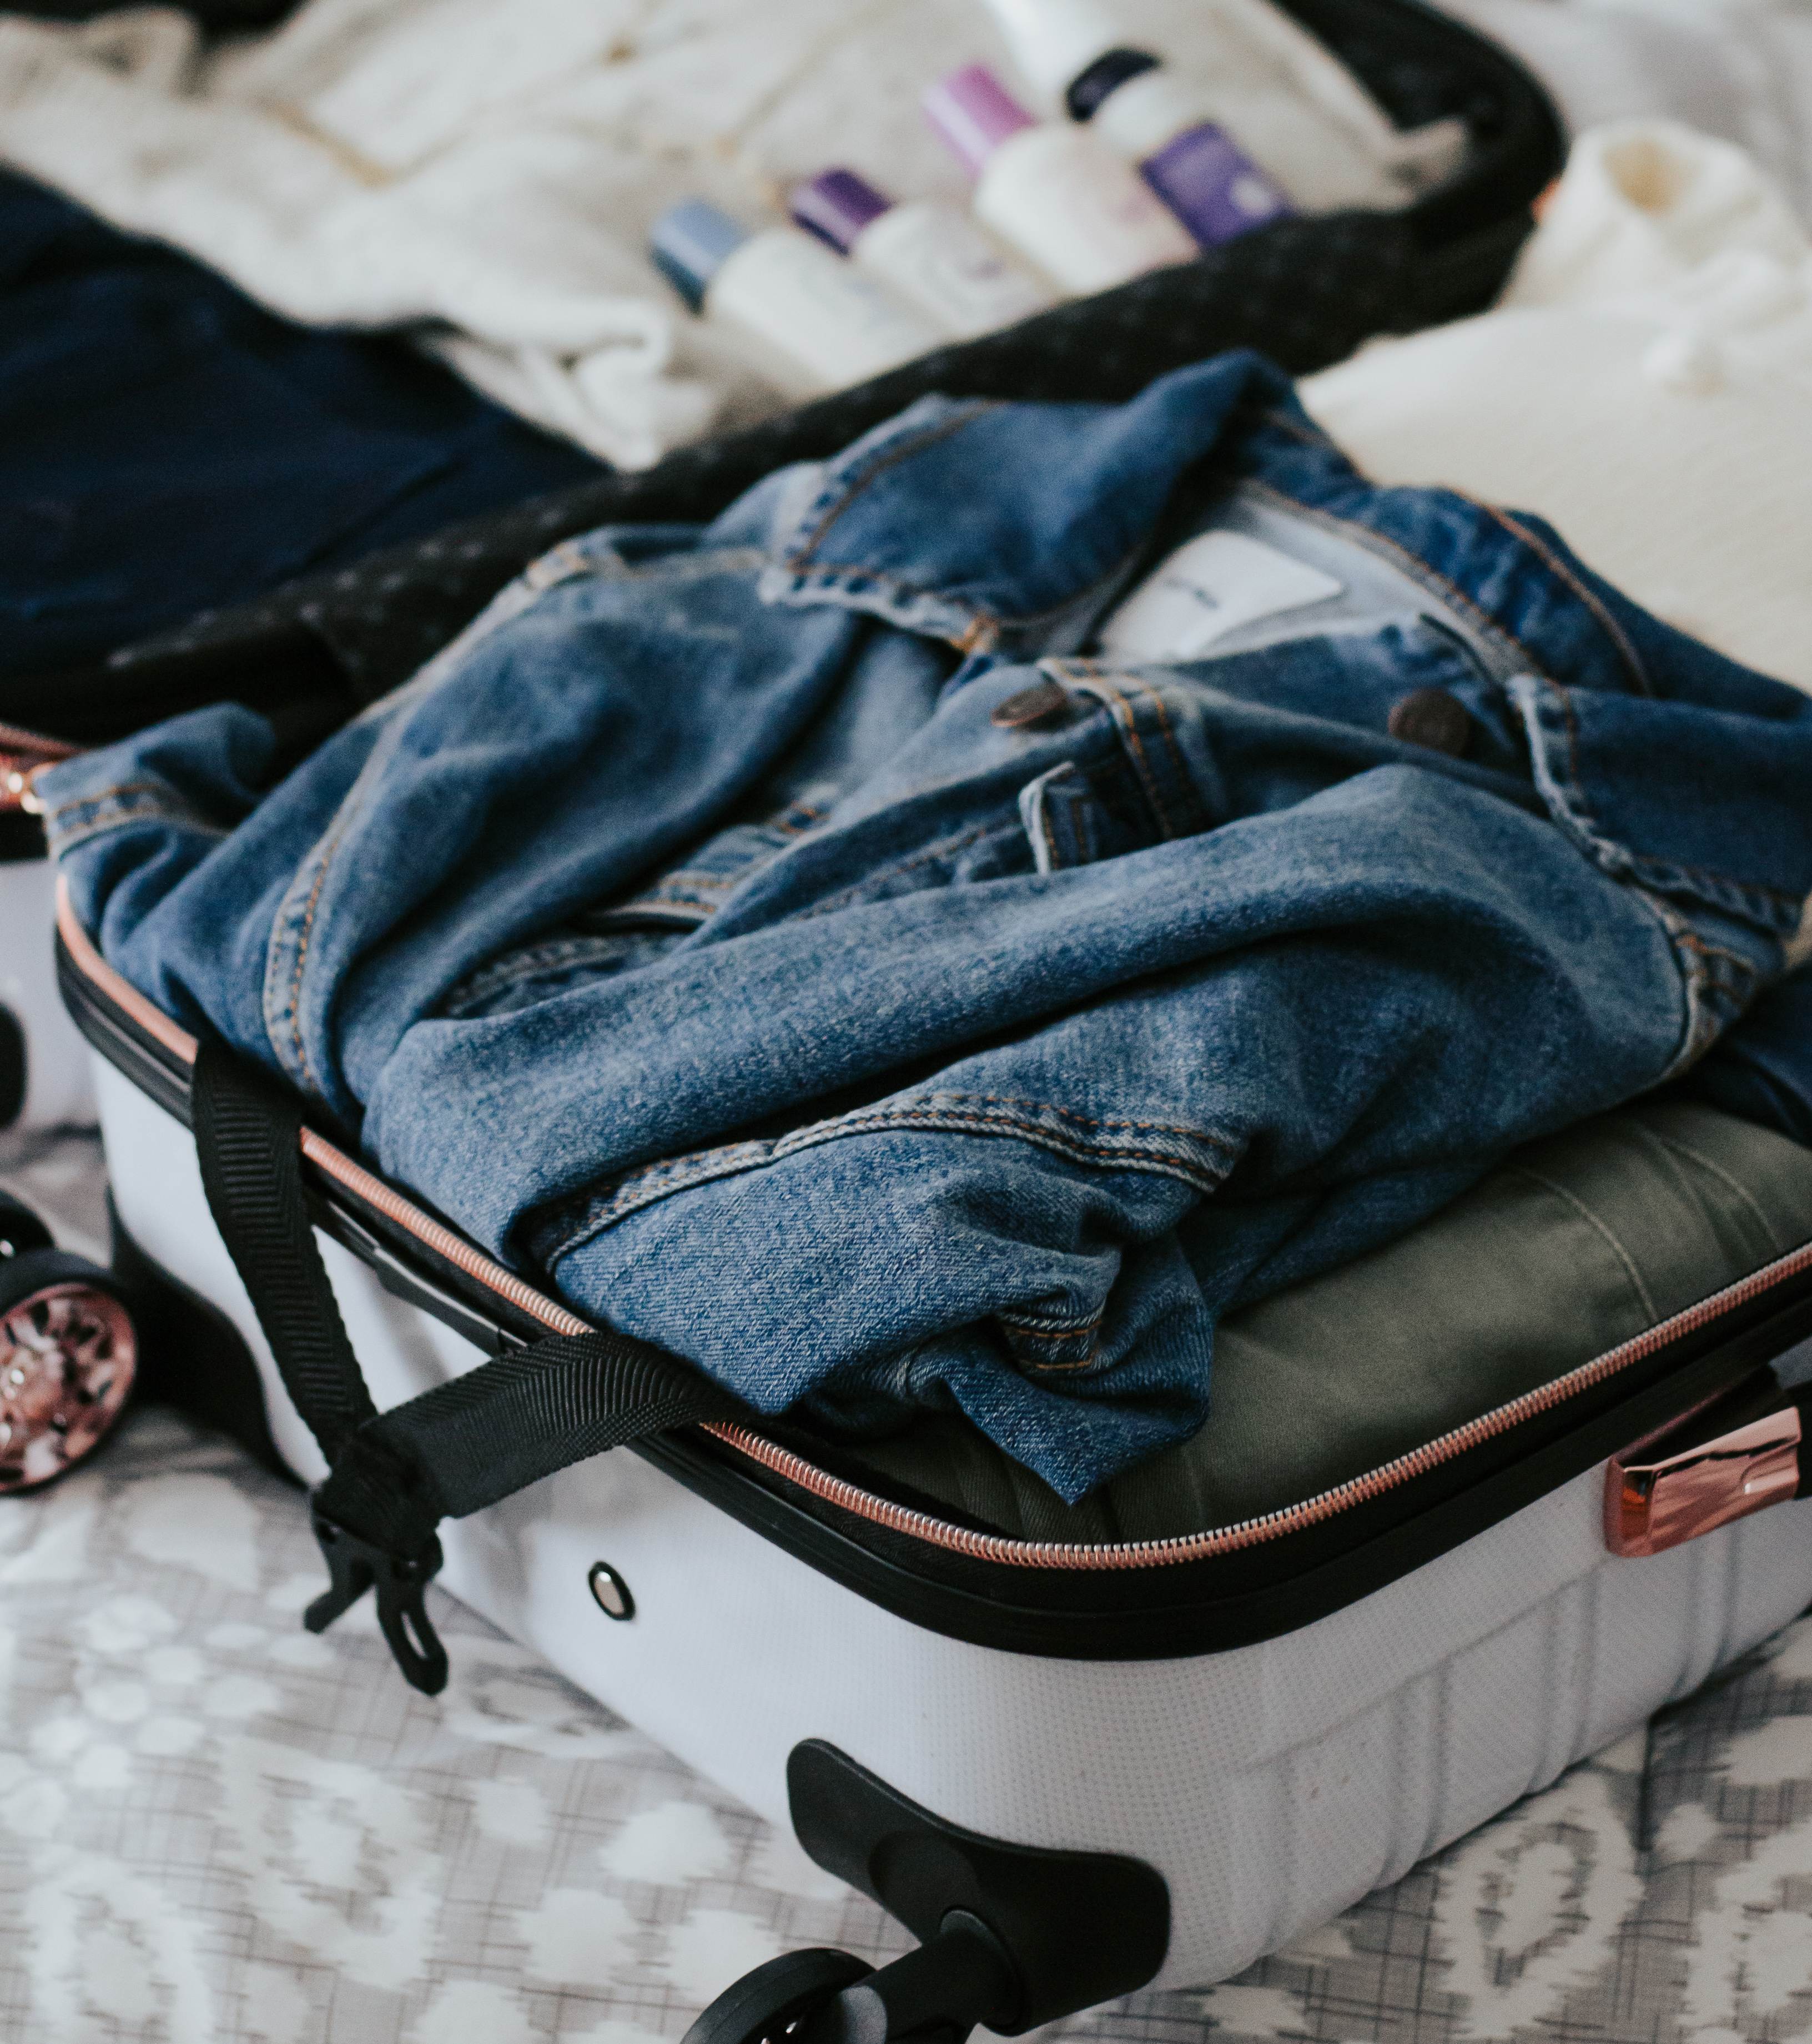 Packing in a carry on